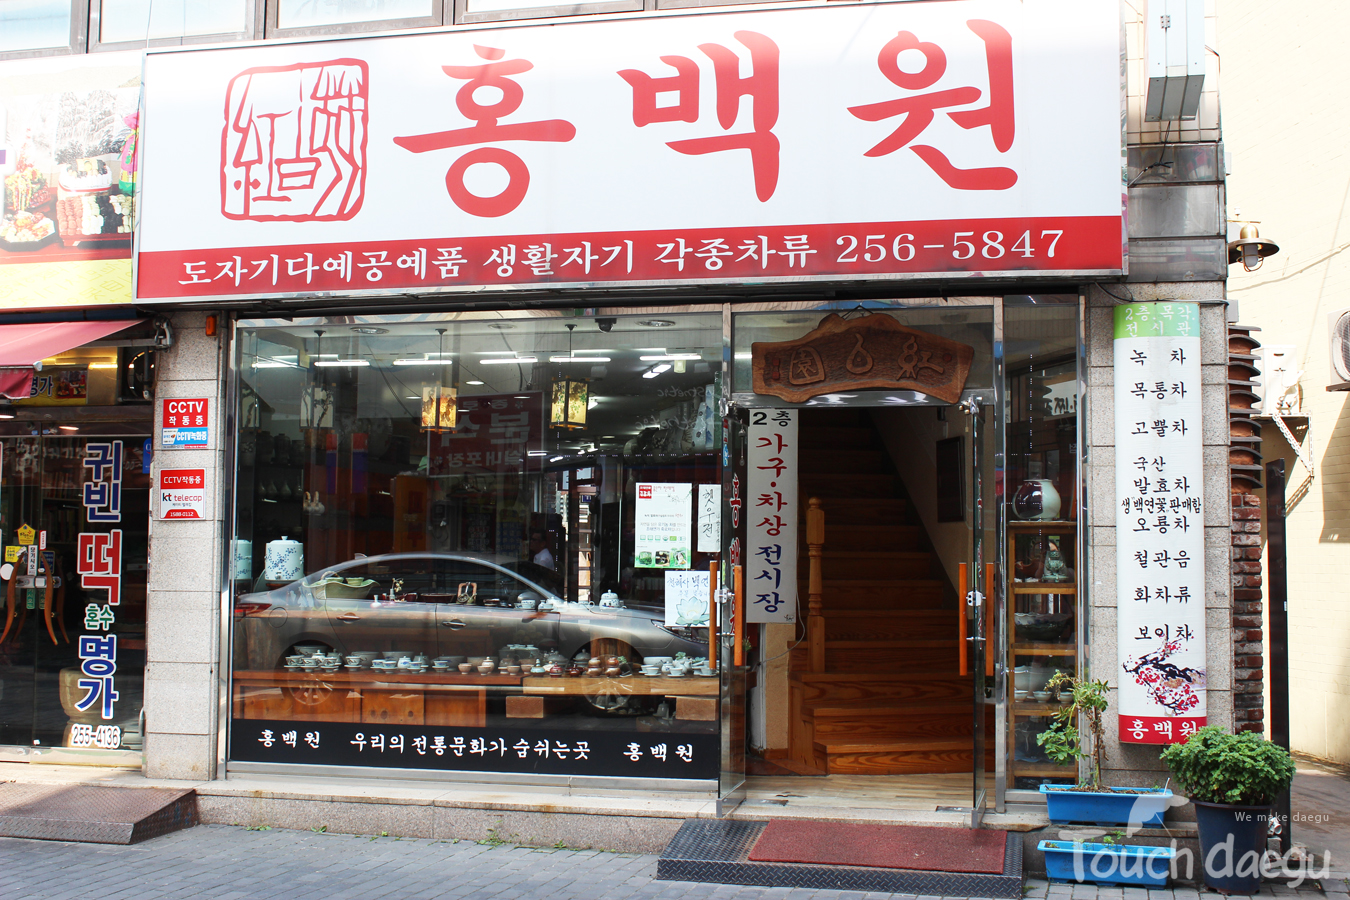 The second shop's name is Dong Baek Won